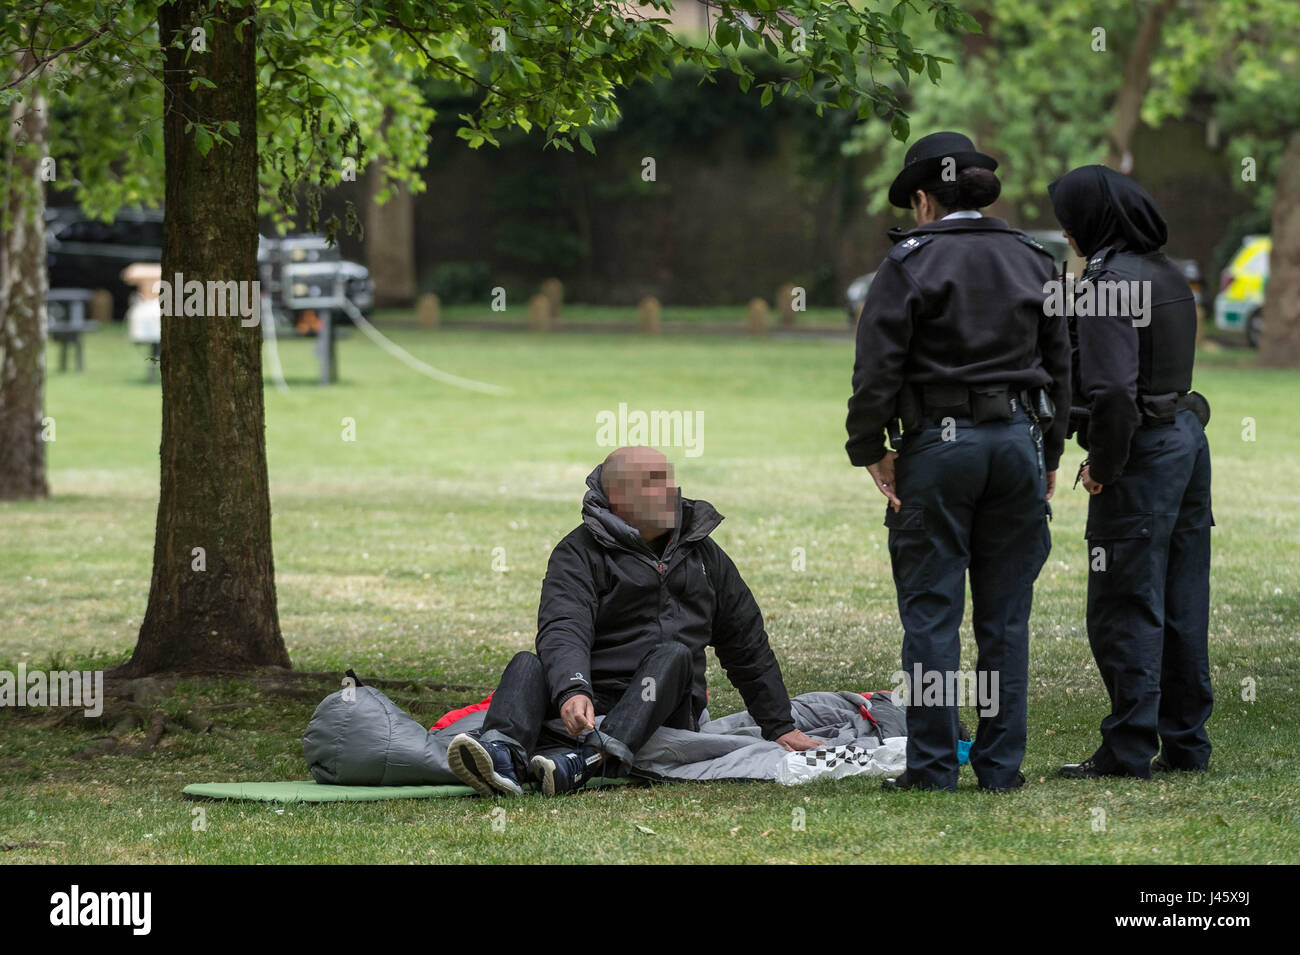 Police officers question then move on a rough sleeper in London's Geraldine Mary Harmsworth Park. UK. - Stock Image